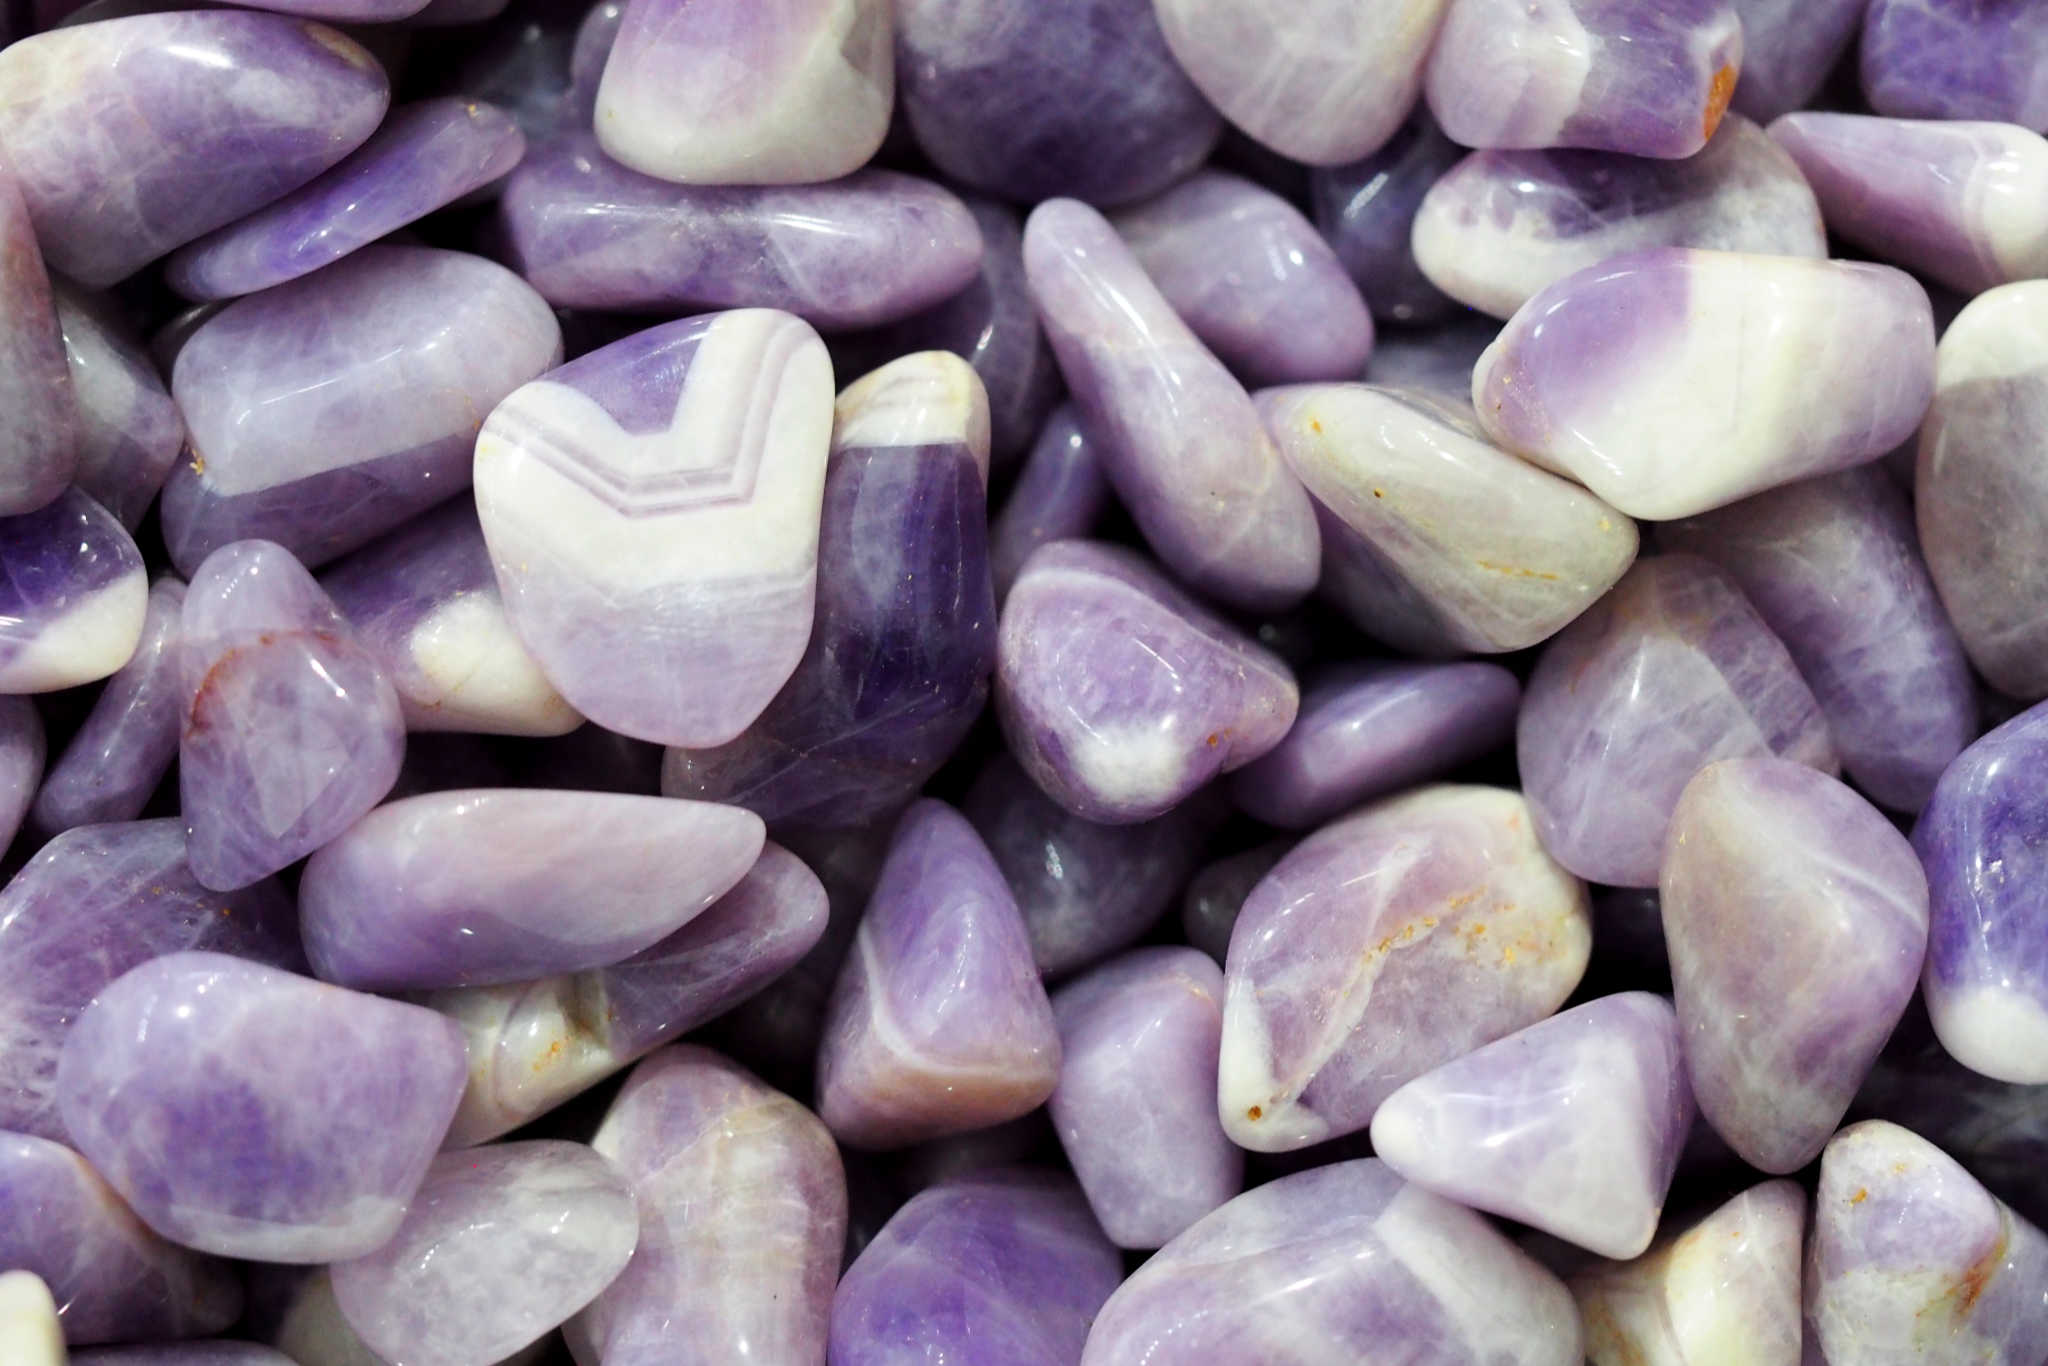 LILAC AMETHYST - A beautiful light shade of amethyst resembling lilac blooms.Origin: Brazil, Uruguay, South Korea, and the USA.Properties: A stone of inner wisdom, it brings peaceful and centred awareness. Enhances psychic and mental abilities and beauty. Helps overcome addictions. Birthstone: February